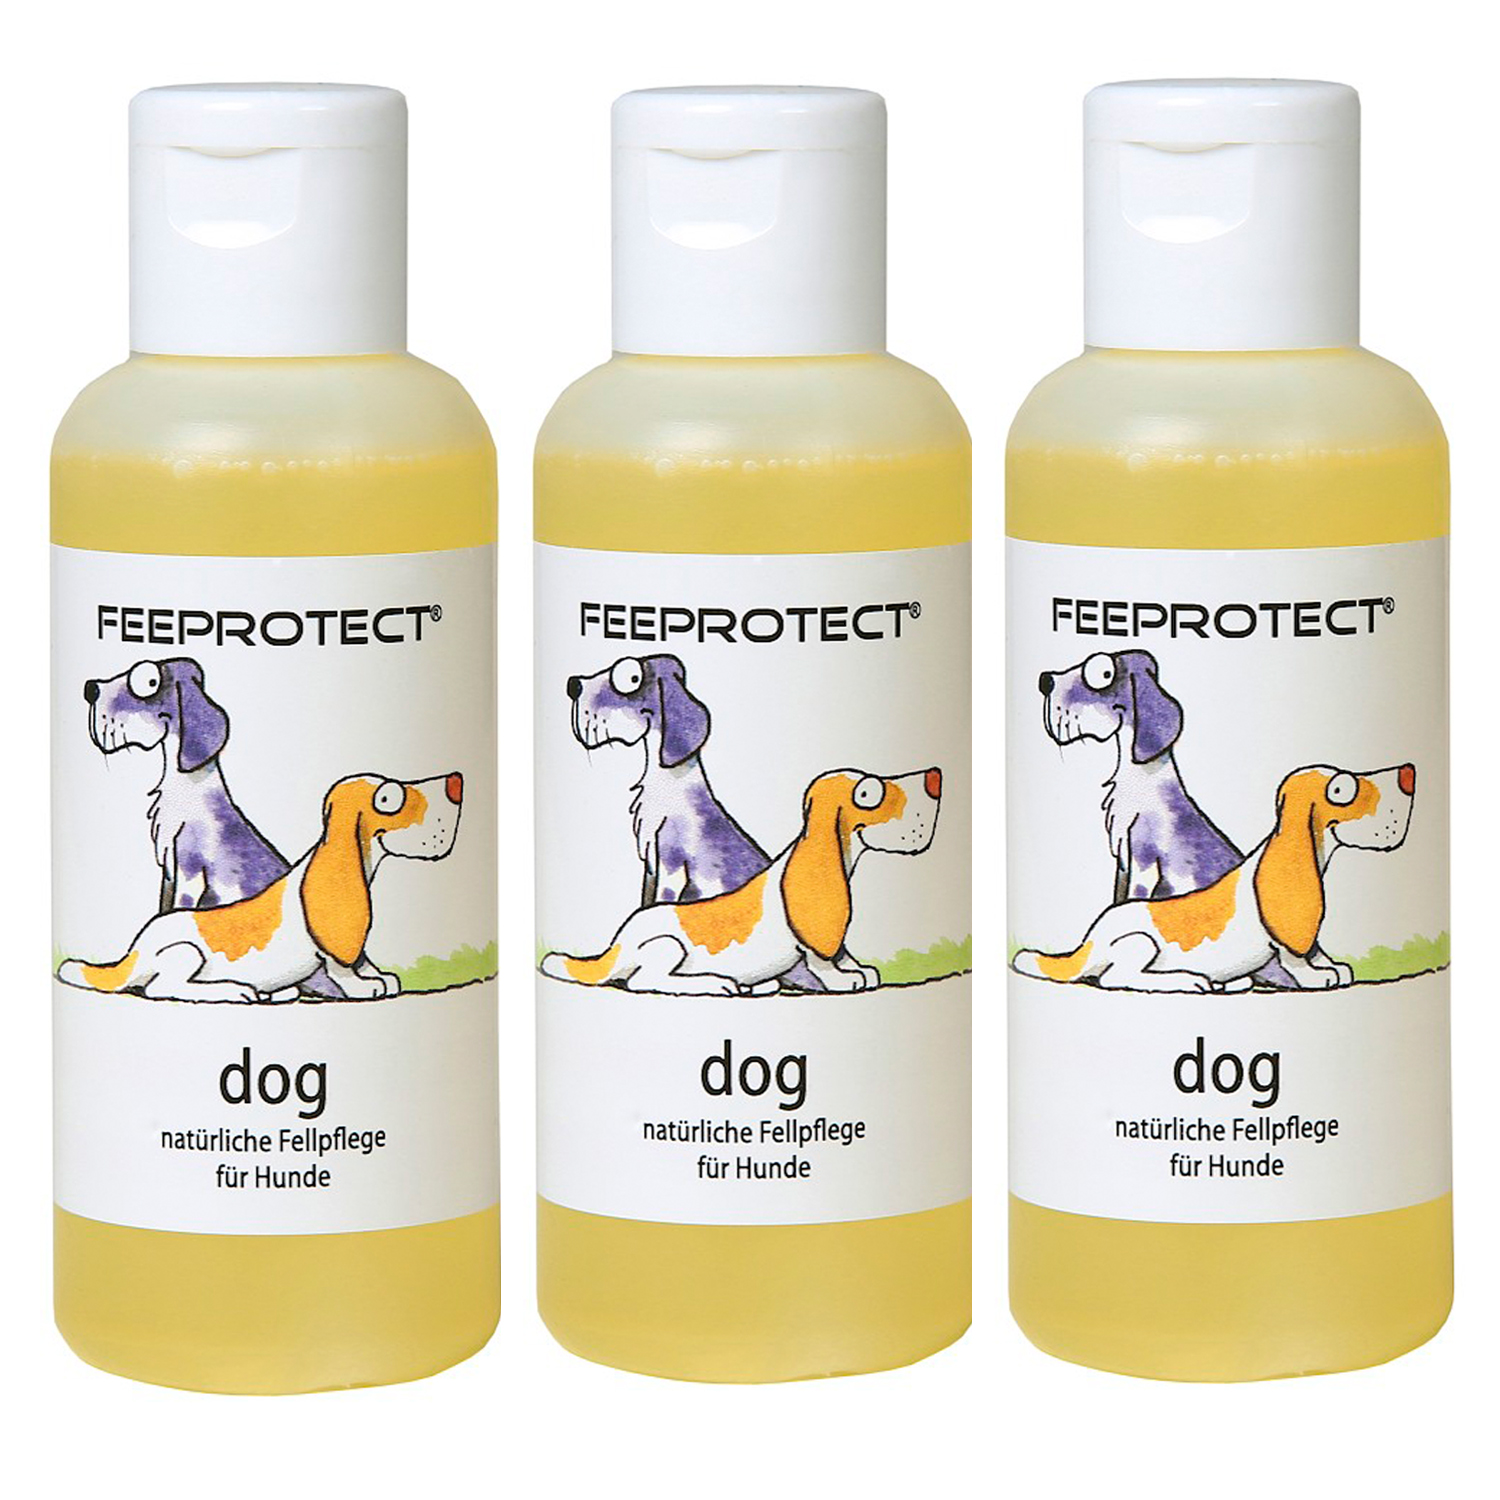 Feeprotect ® dog Fellpflege